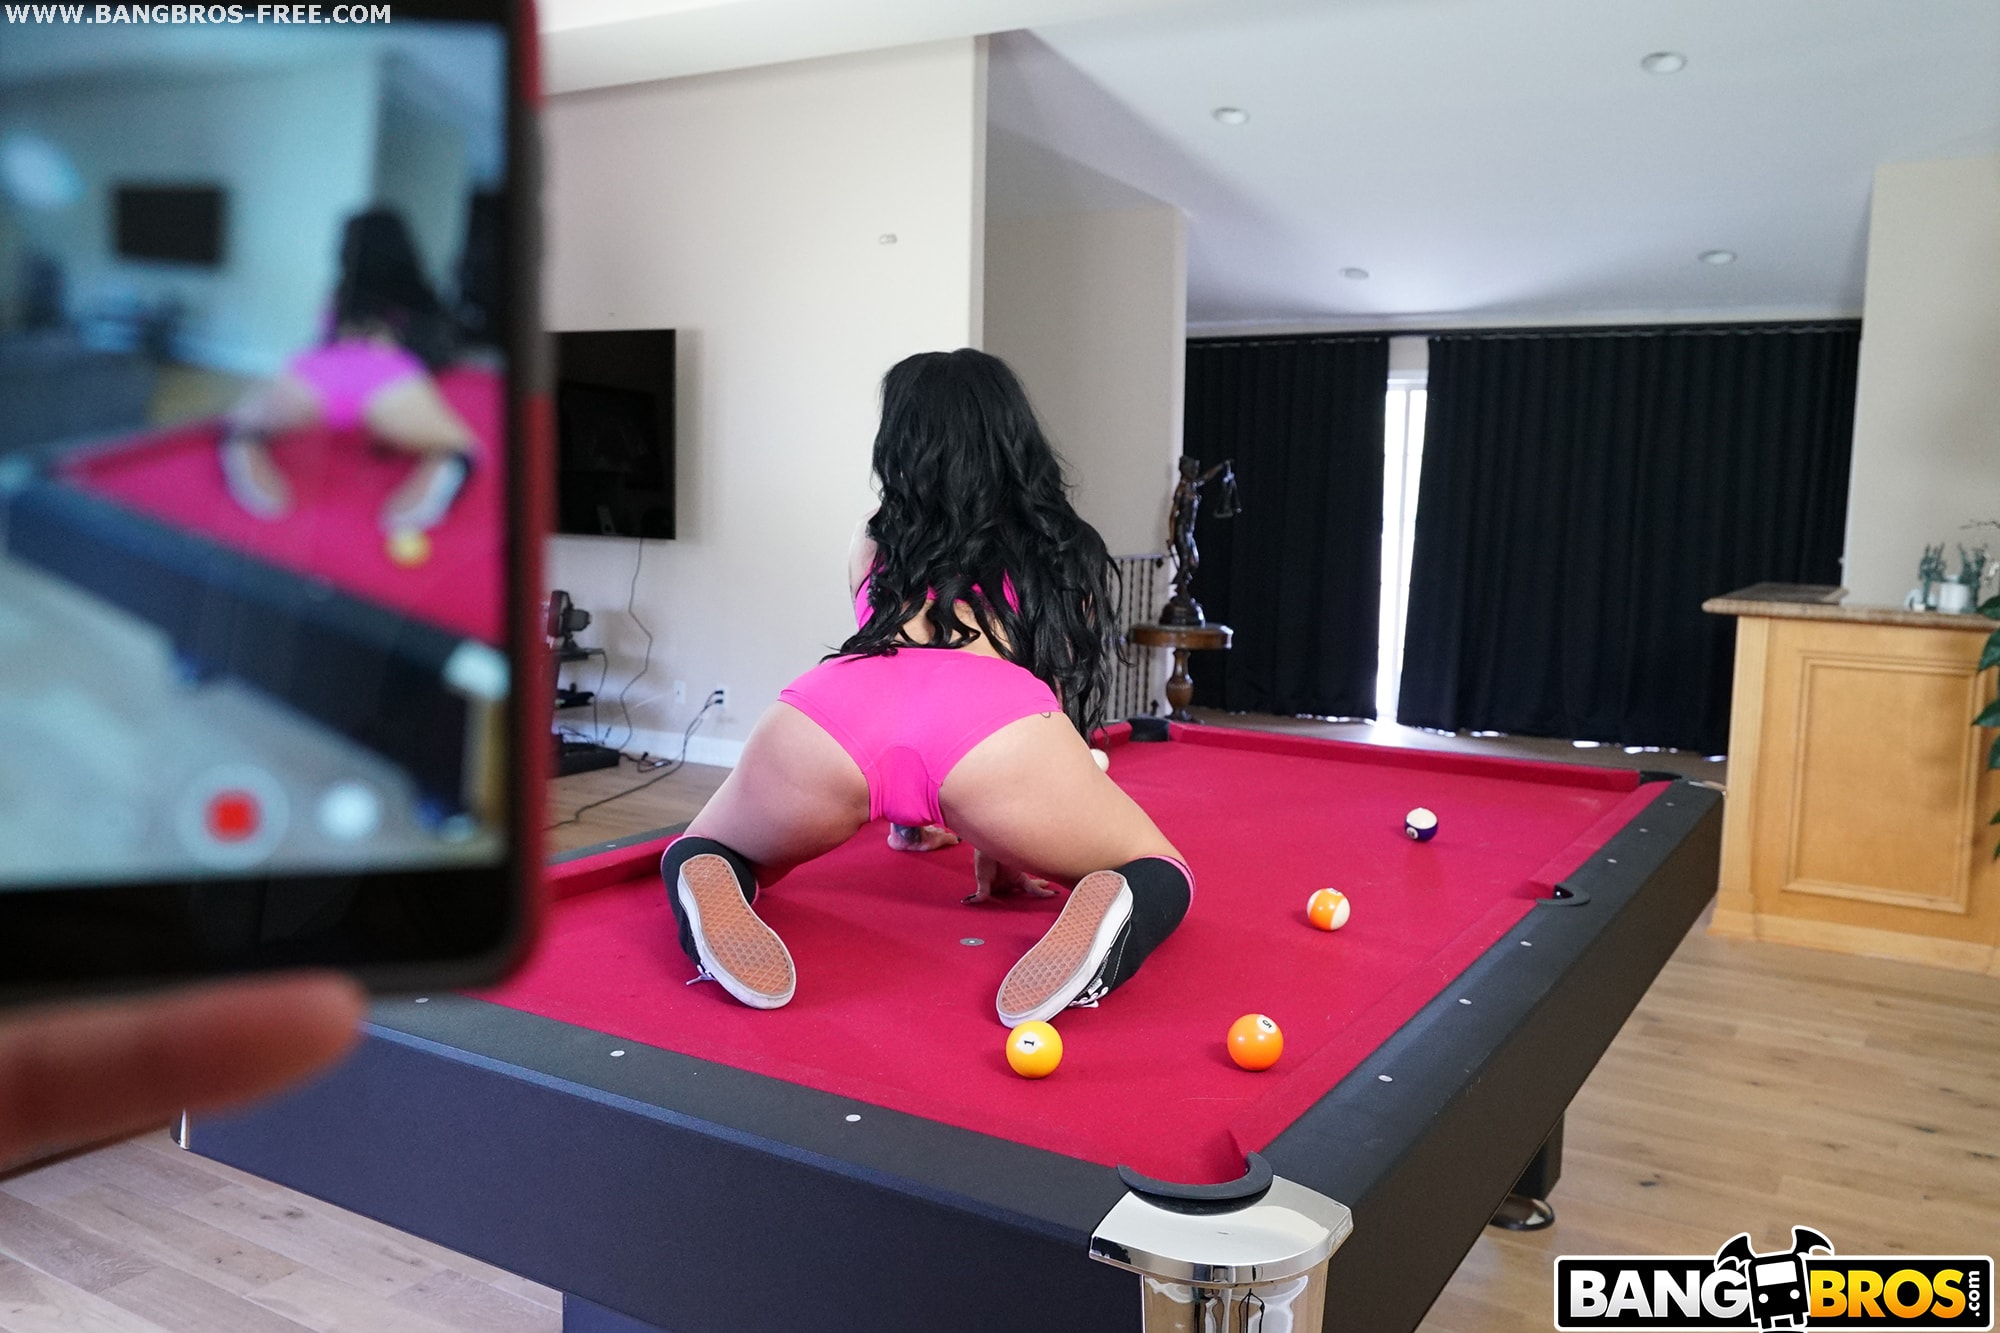 Bangbros 'Showing The P.A. Some Love' starring Katrina Jade (photo 72)